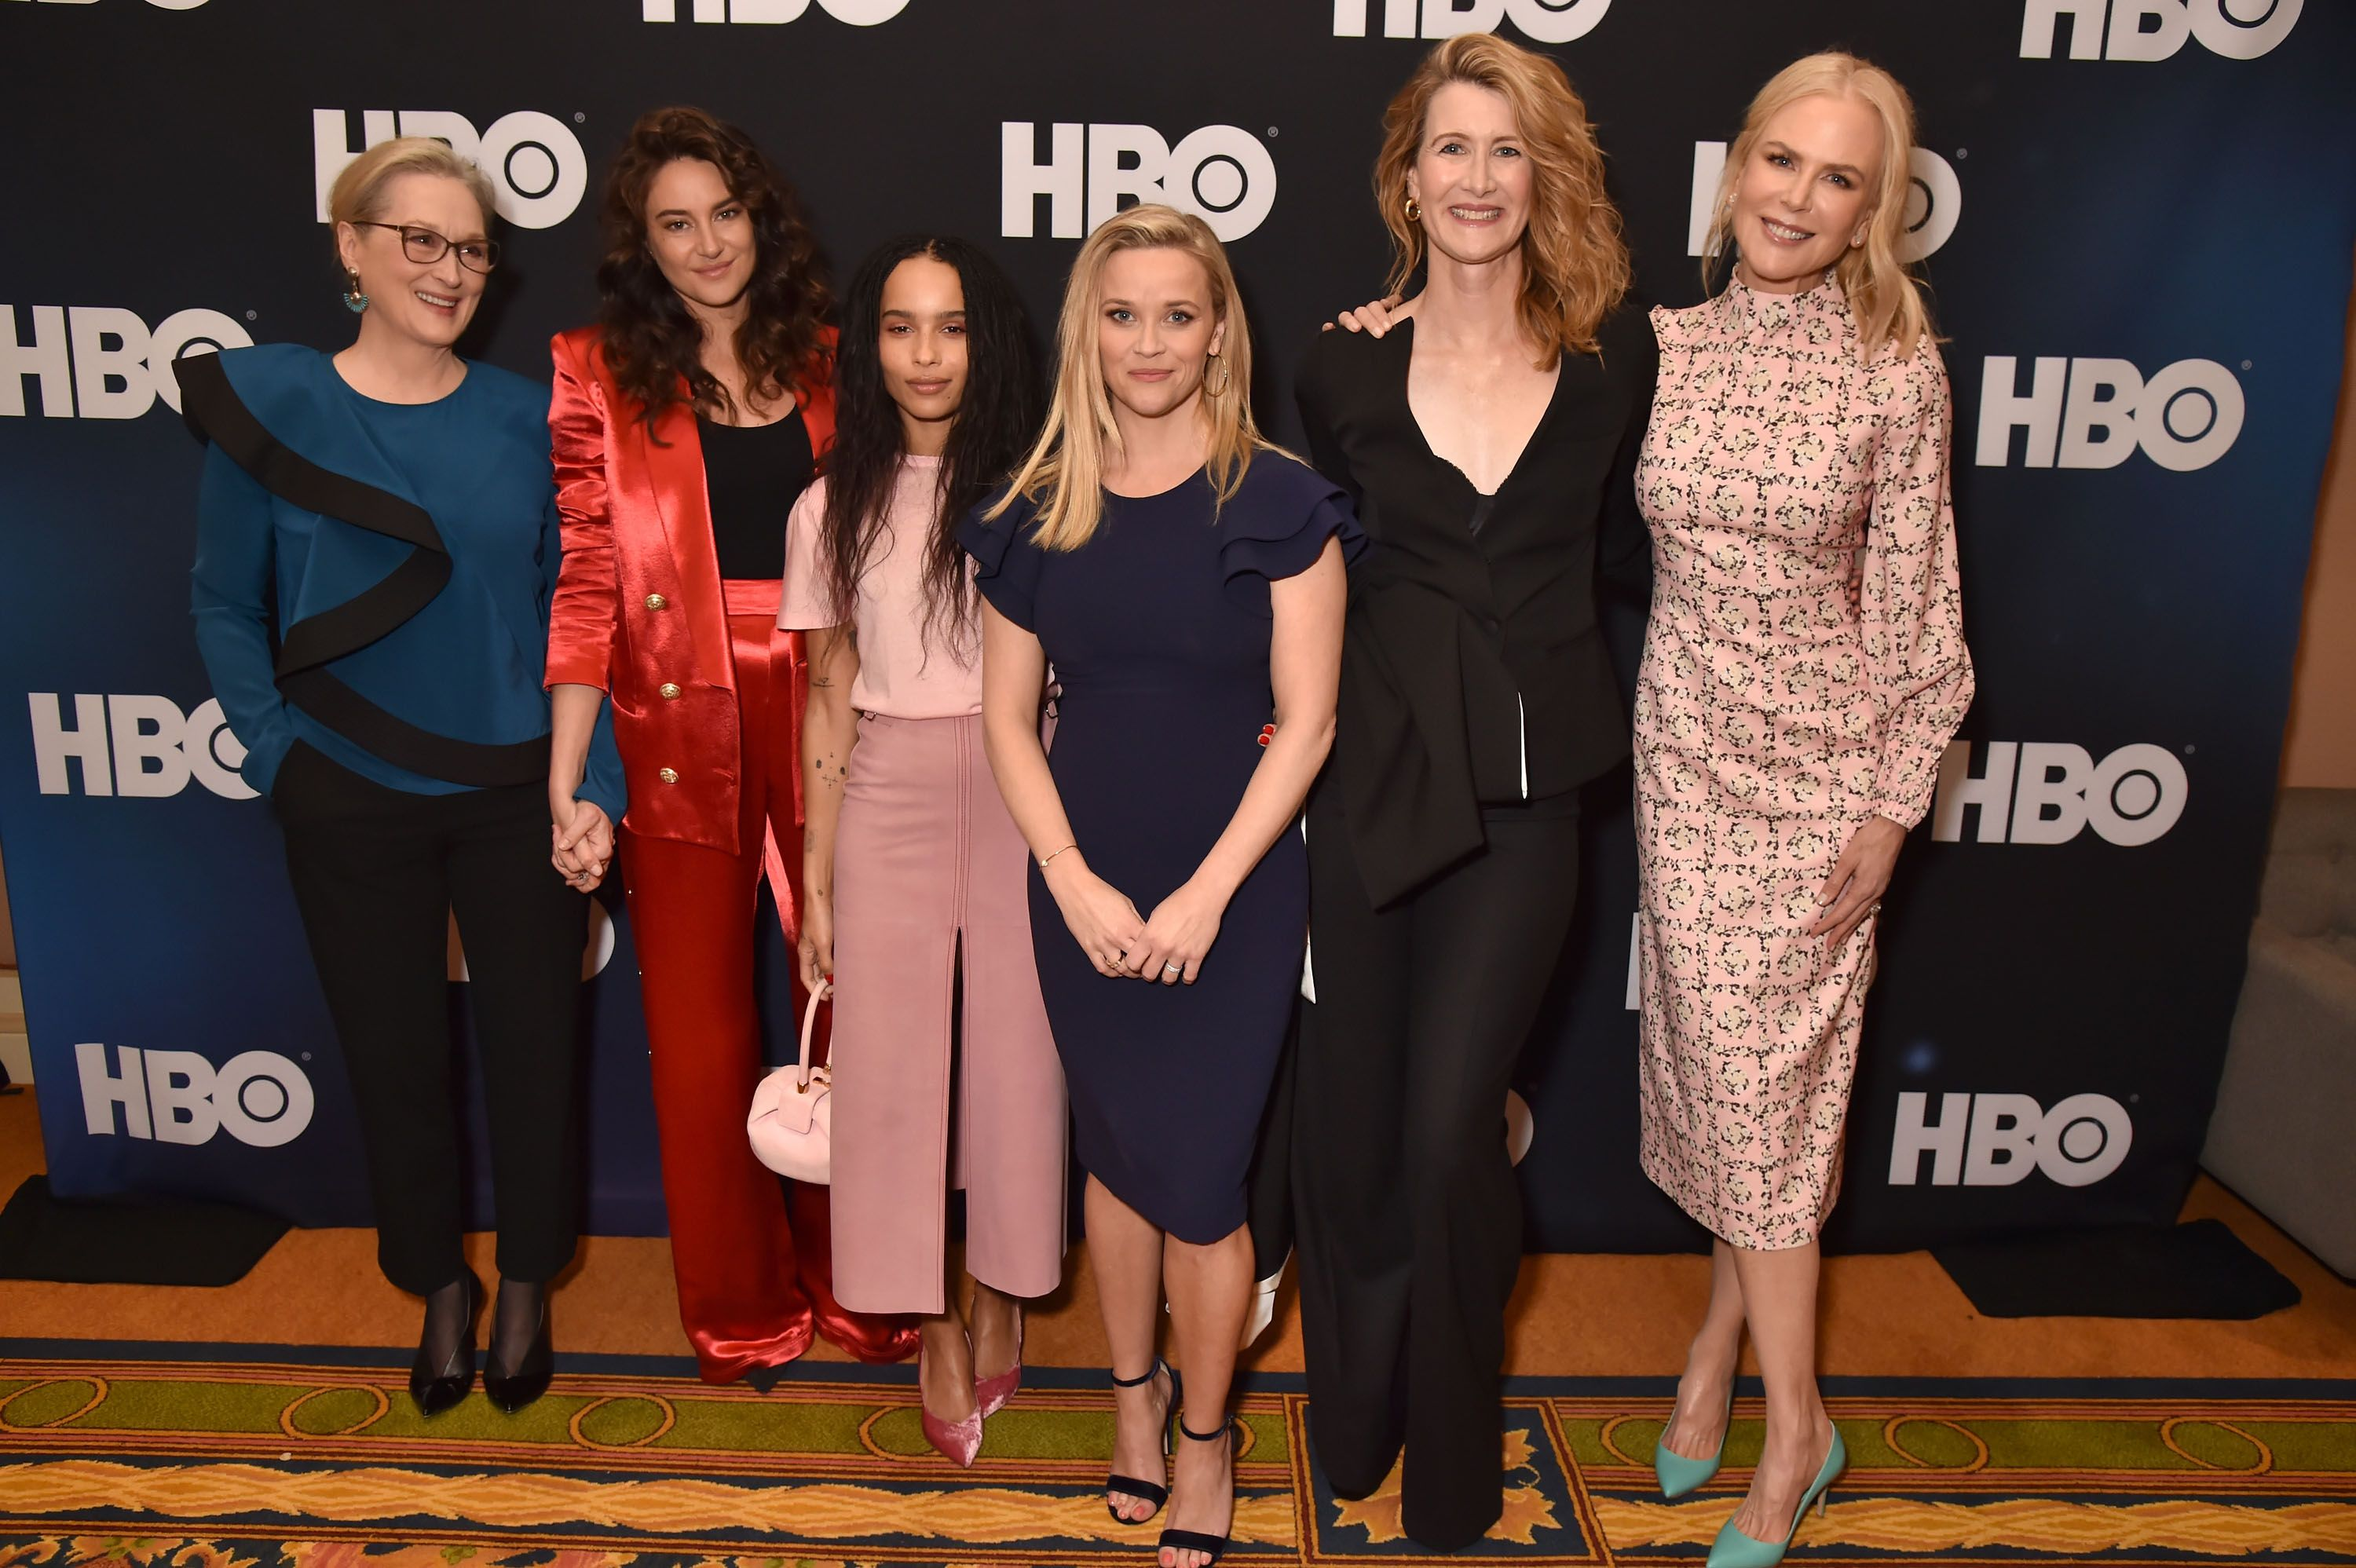 HBO Winter TCA 2019